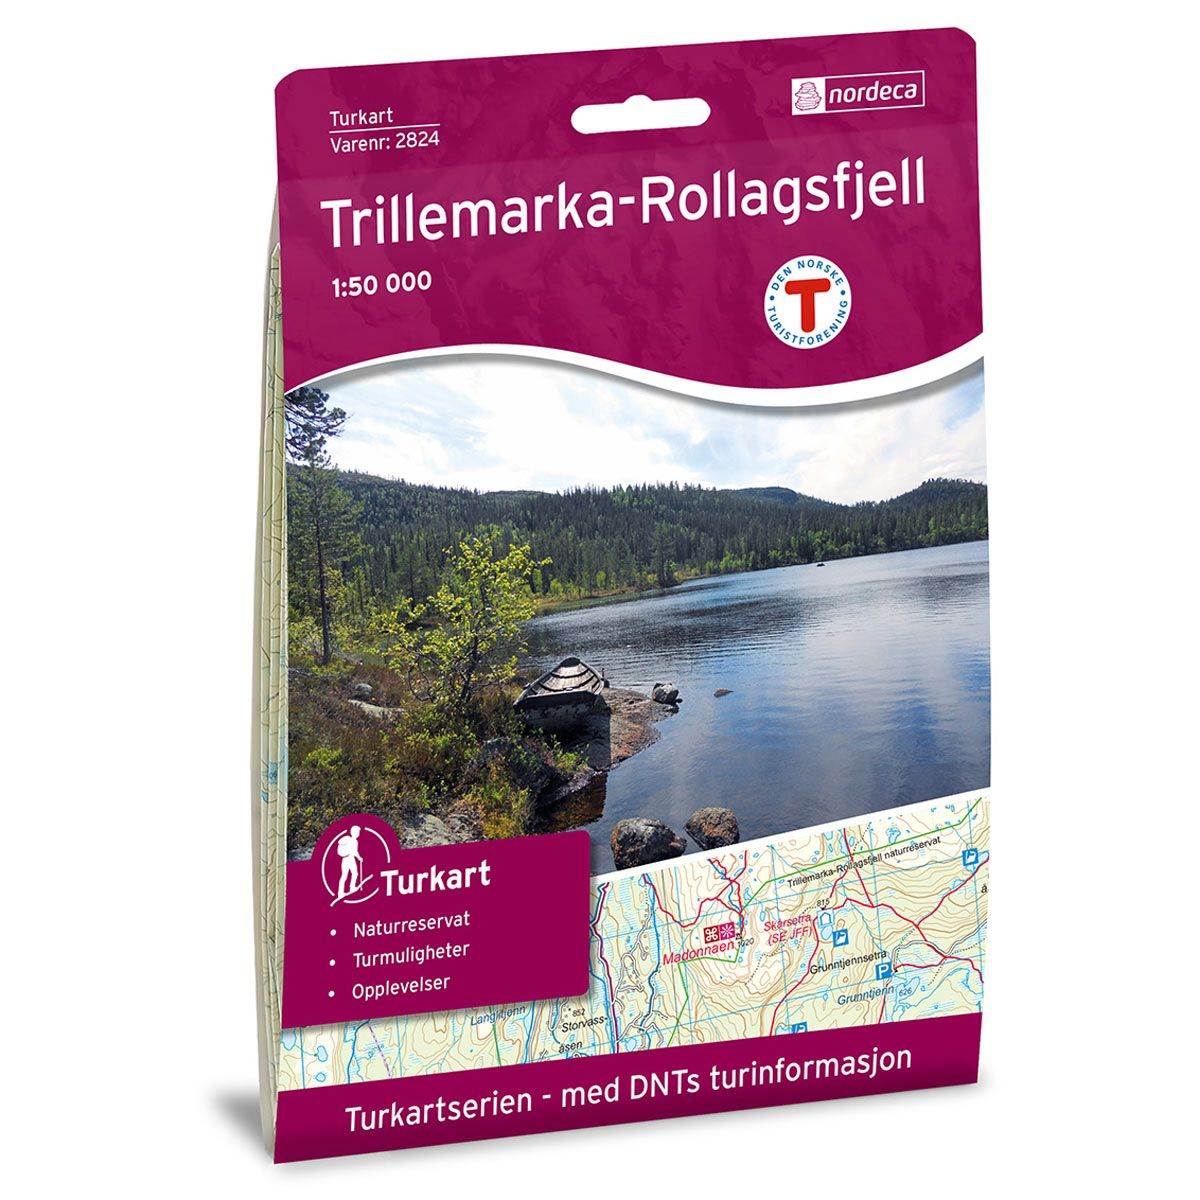 TRILLEMARKA-ROLLAGSFJELL 1:50 000